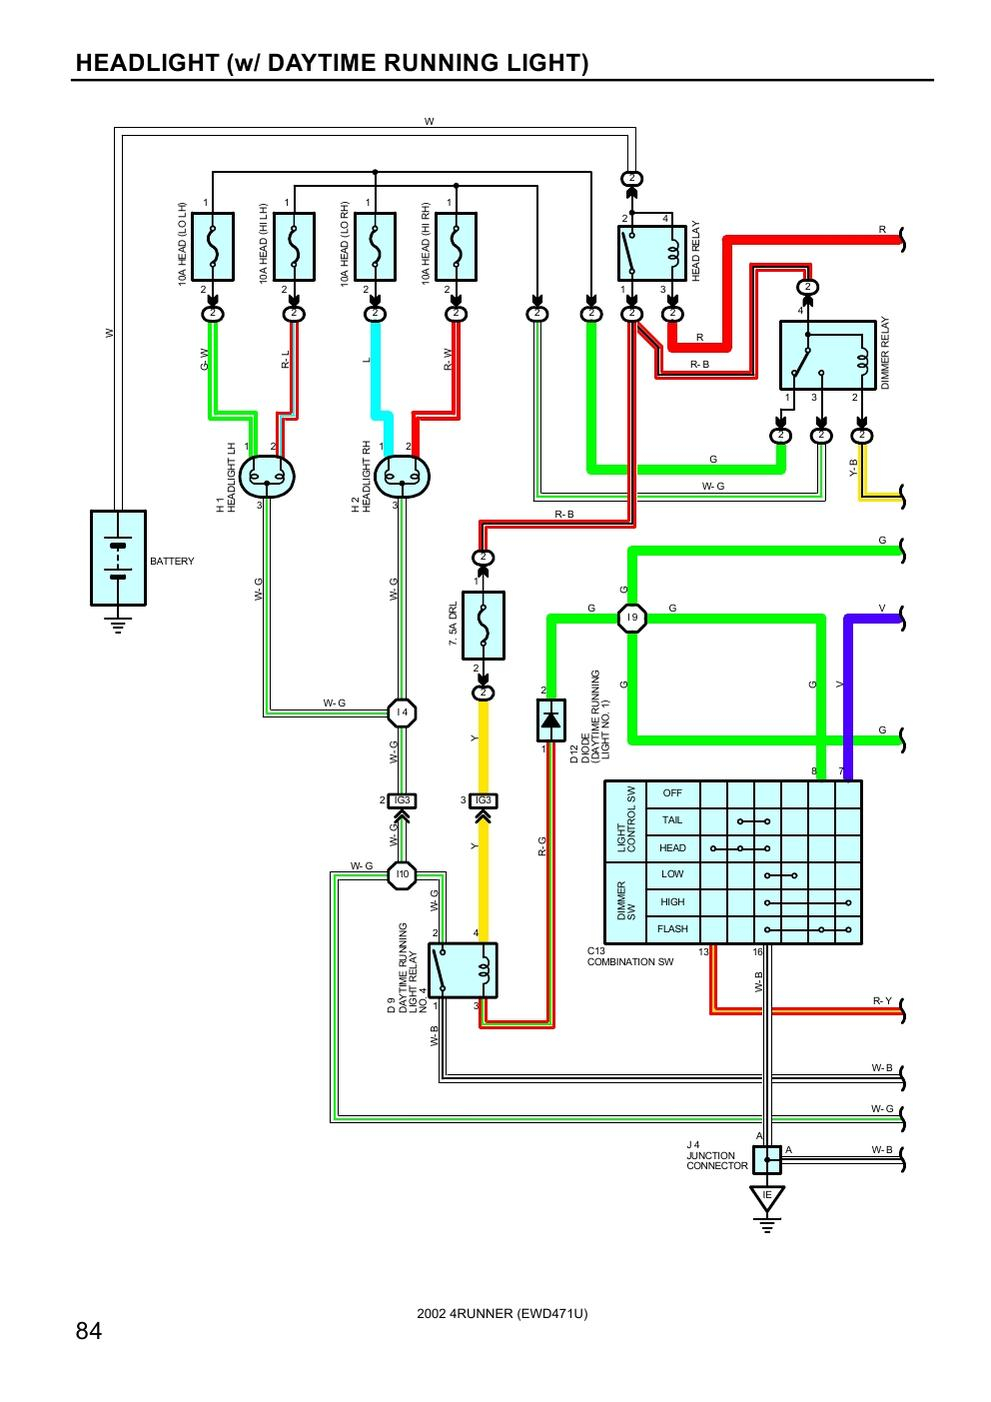 2013 Prius Wiring Diagram 2013 Circuit Diagrams